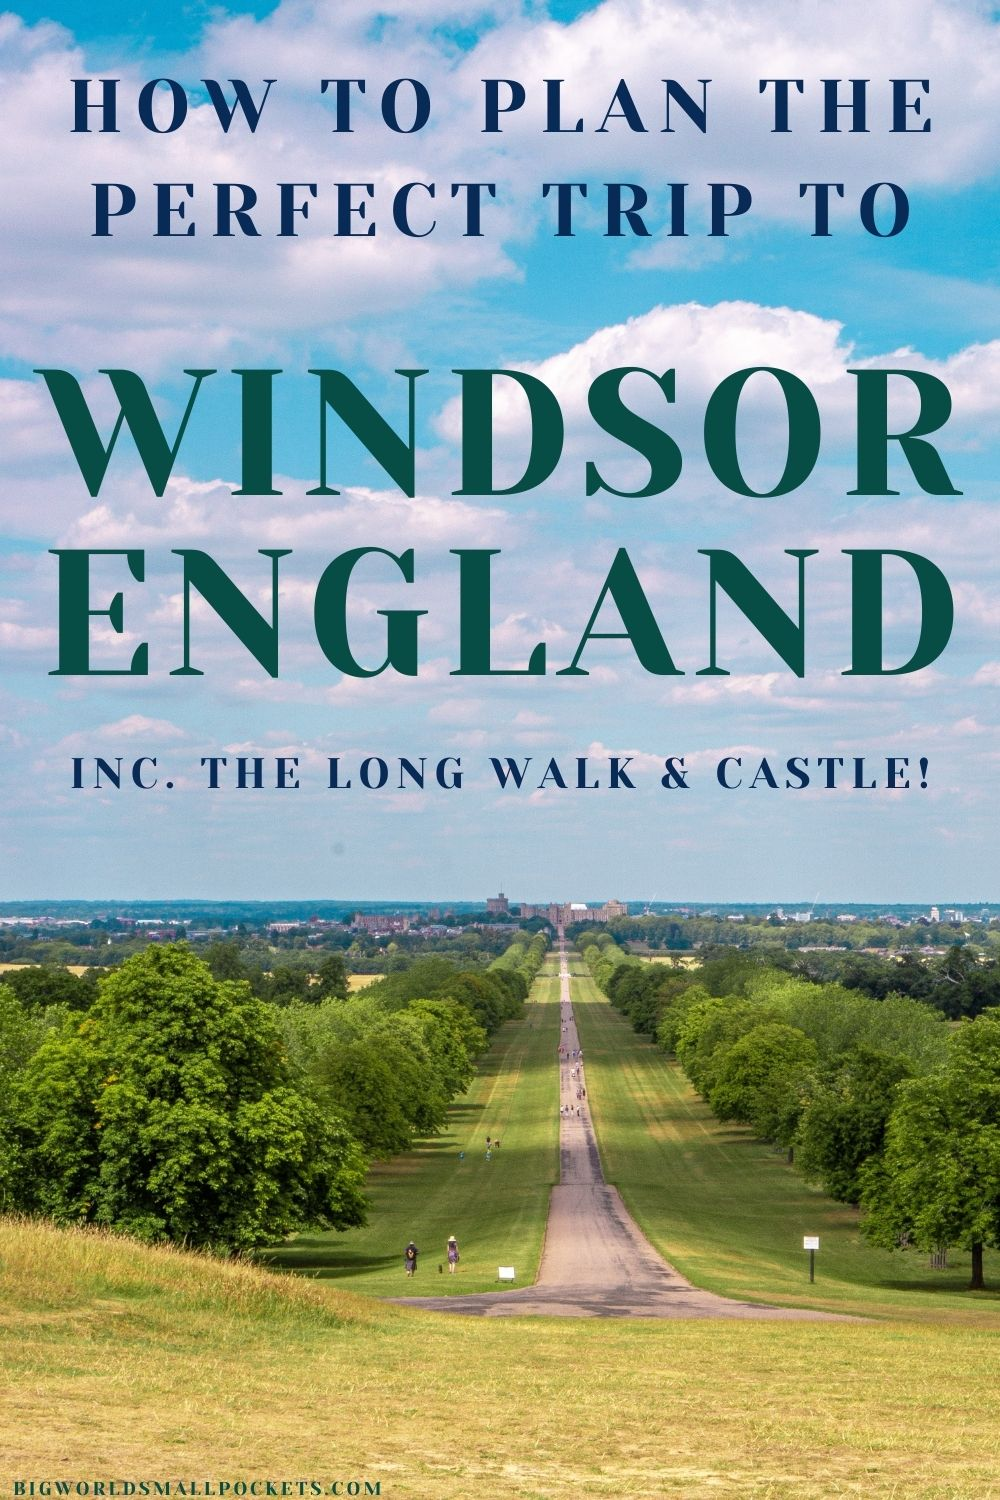 How to Plan the Perfect Trip to Windsor, England